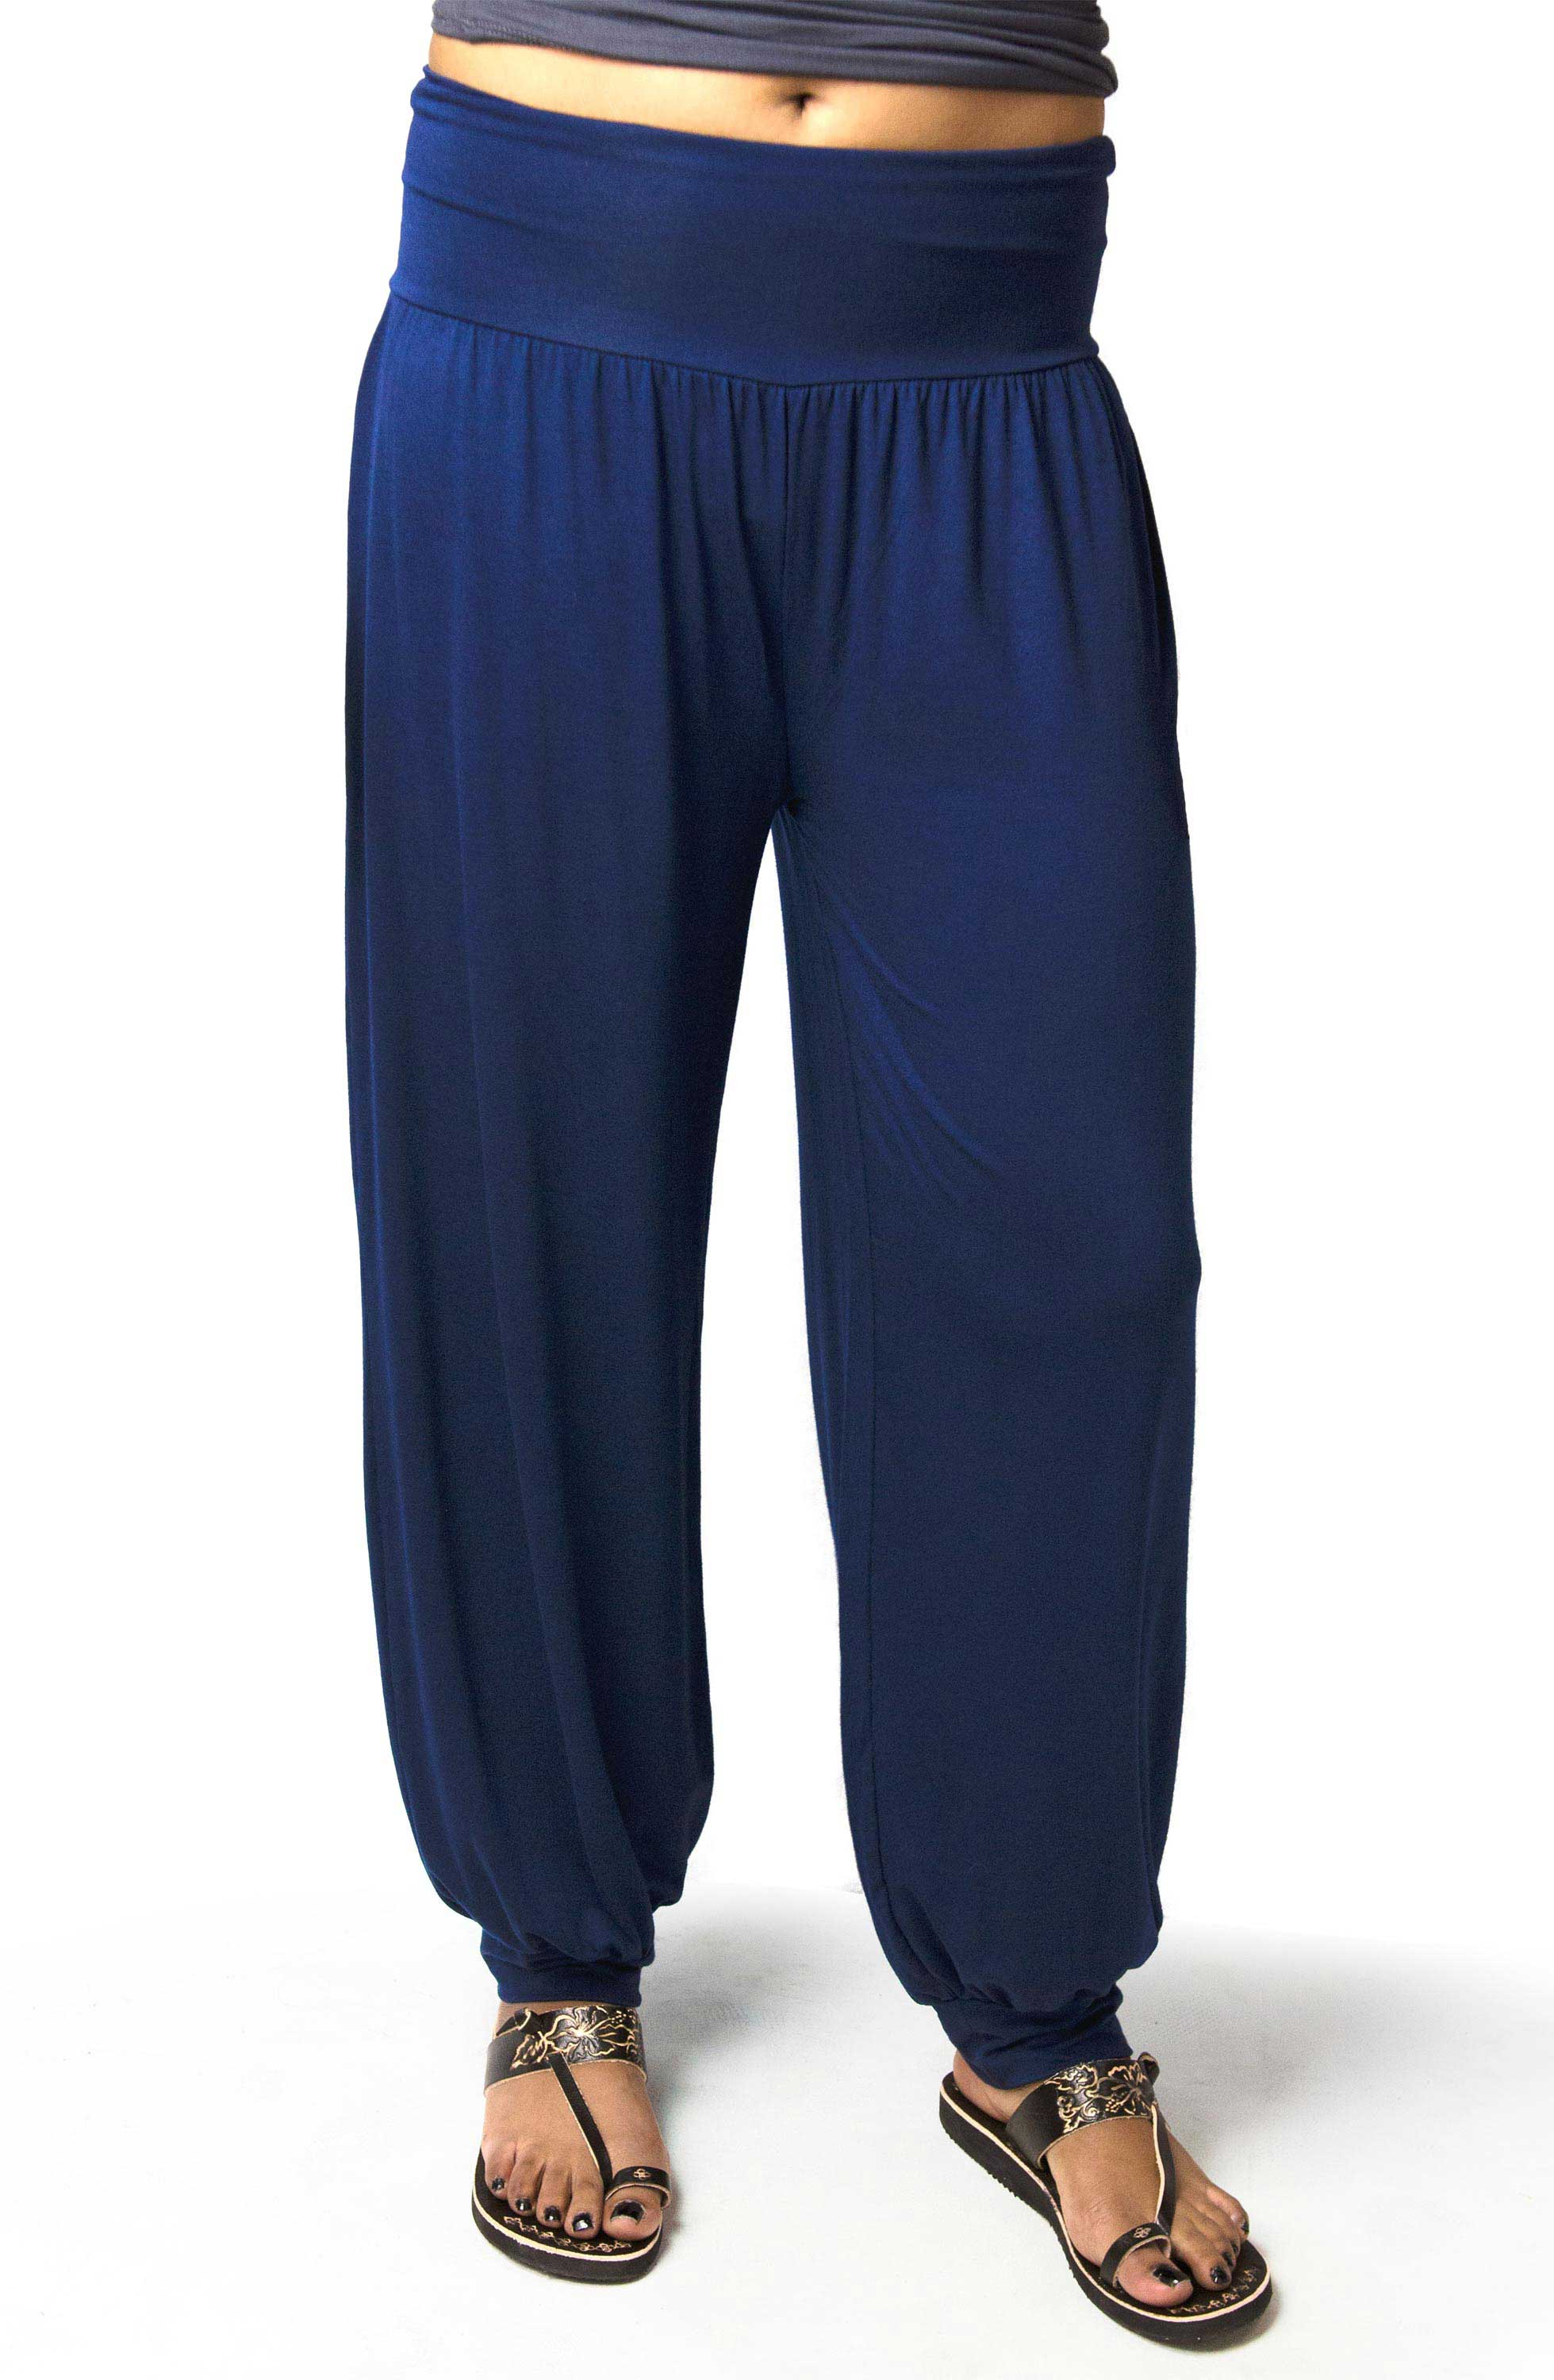 Harem Pants, Solid Color, Blue - 2365-B